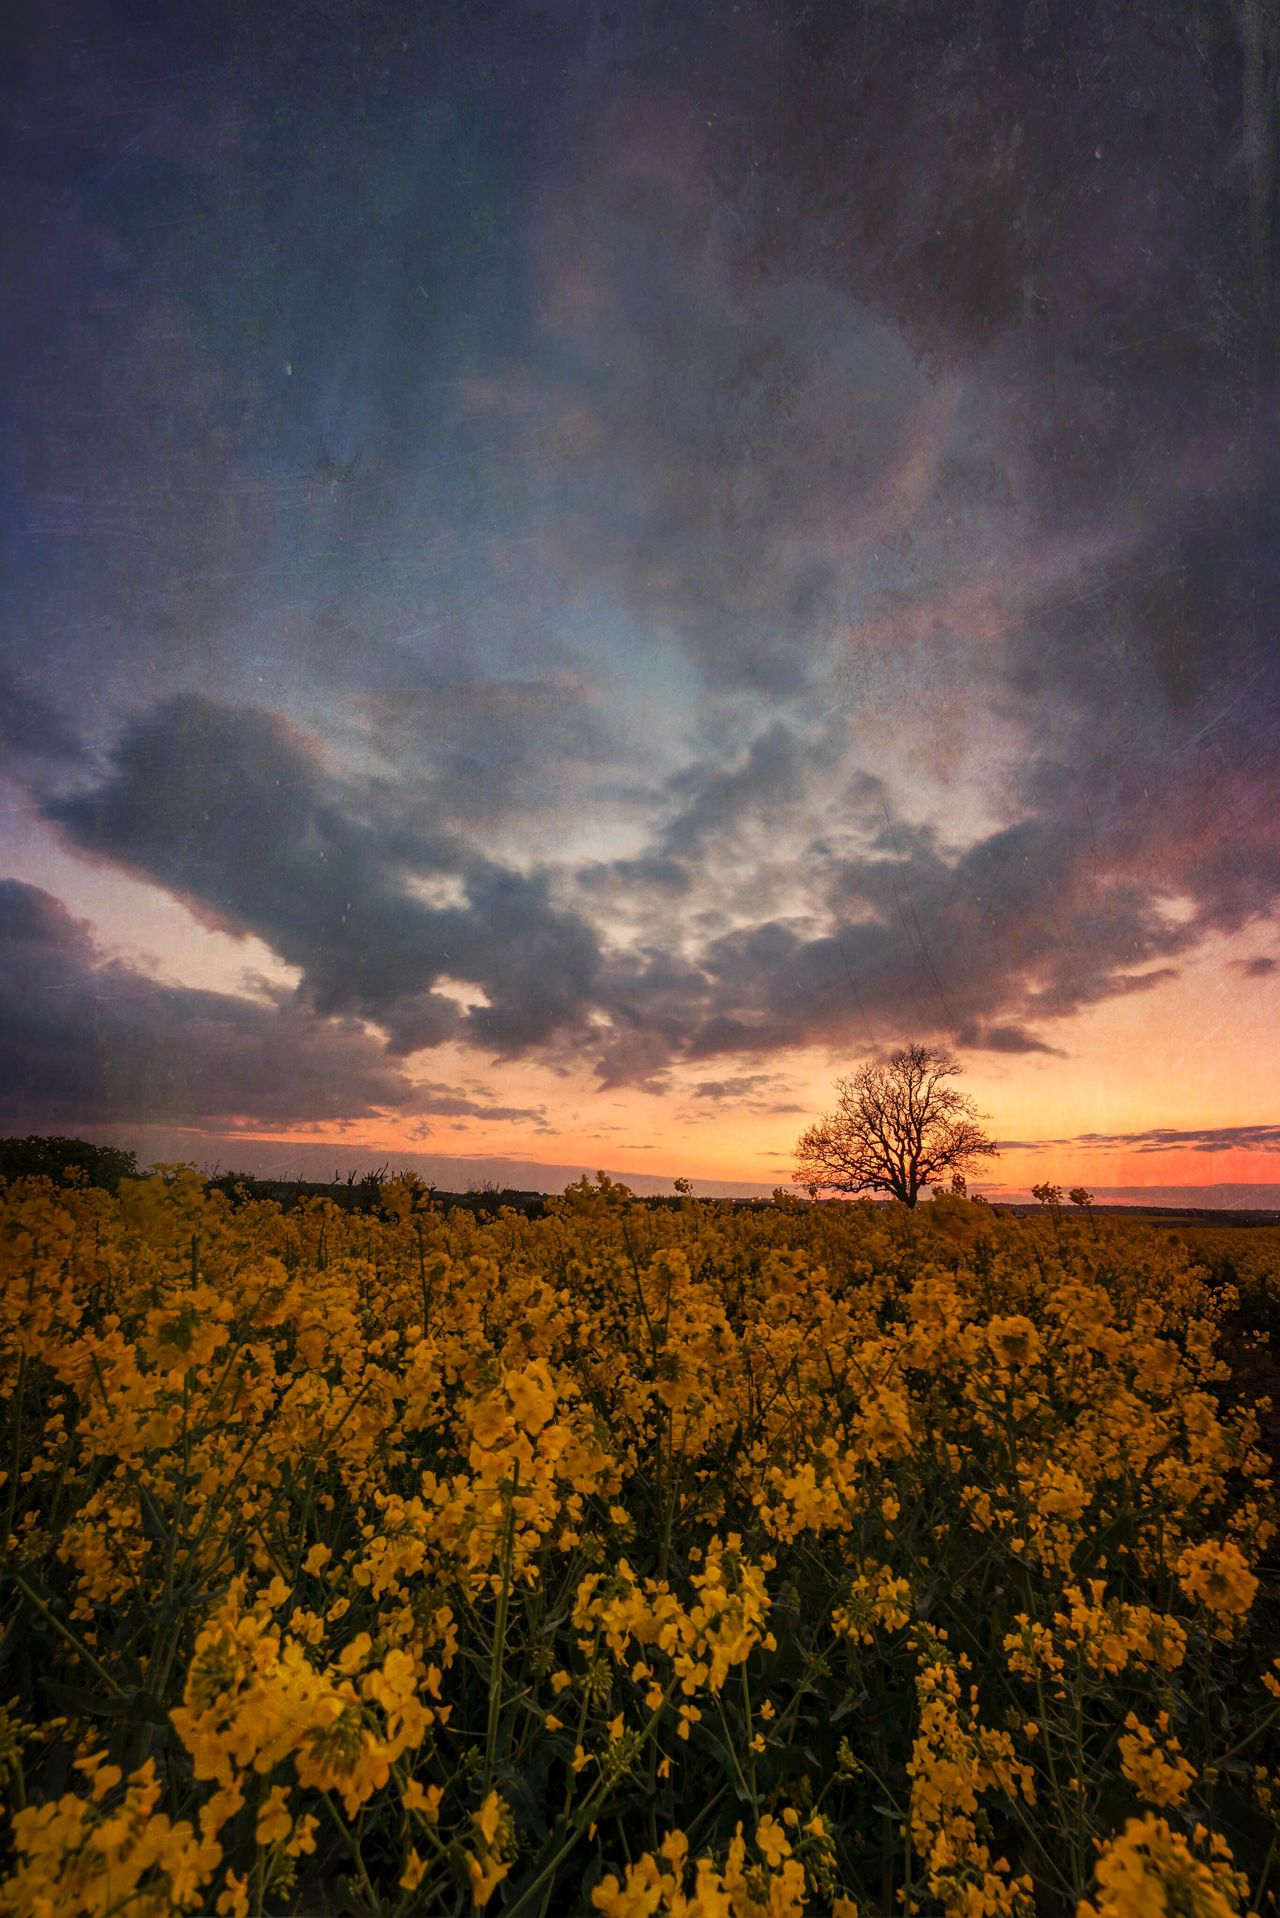 Summer Hues Flower Nature Beauty In Nature Tranquility Sunset Growth Tranquil Scene Sky Scenics Yellow No People Landscape Plant Field Outdoors Tree Fragility Flower Head Day The Great Outdoors - 2017 EyeEm Awards Lone Tree Summertime British Countryside Rapeseed Field Countryside